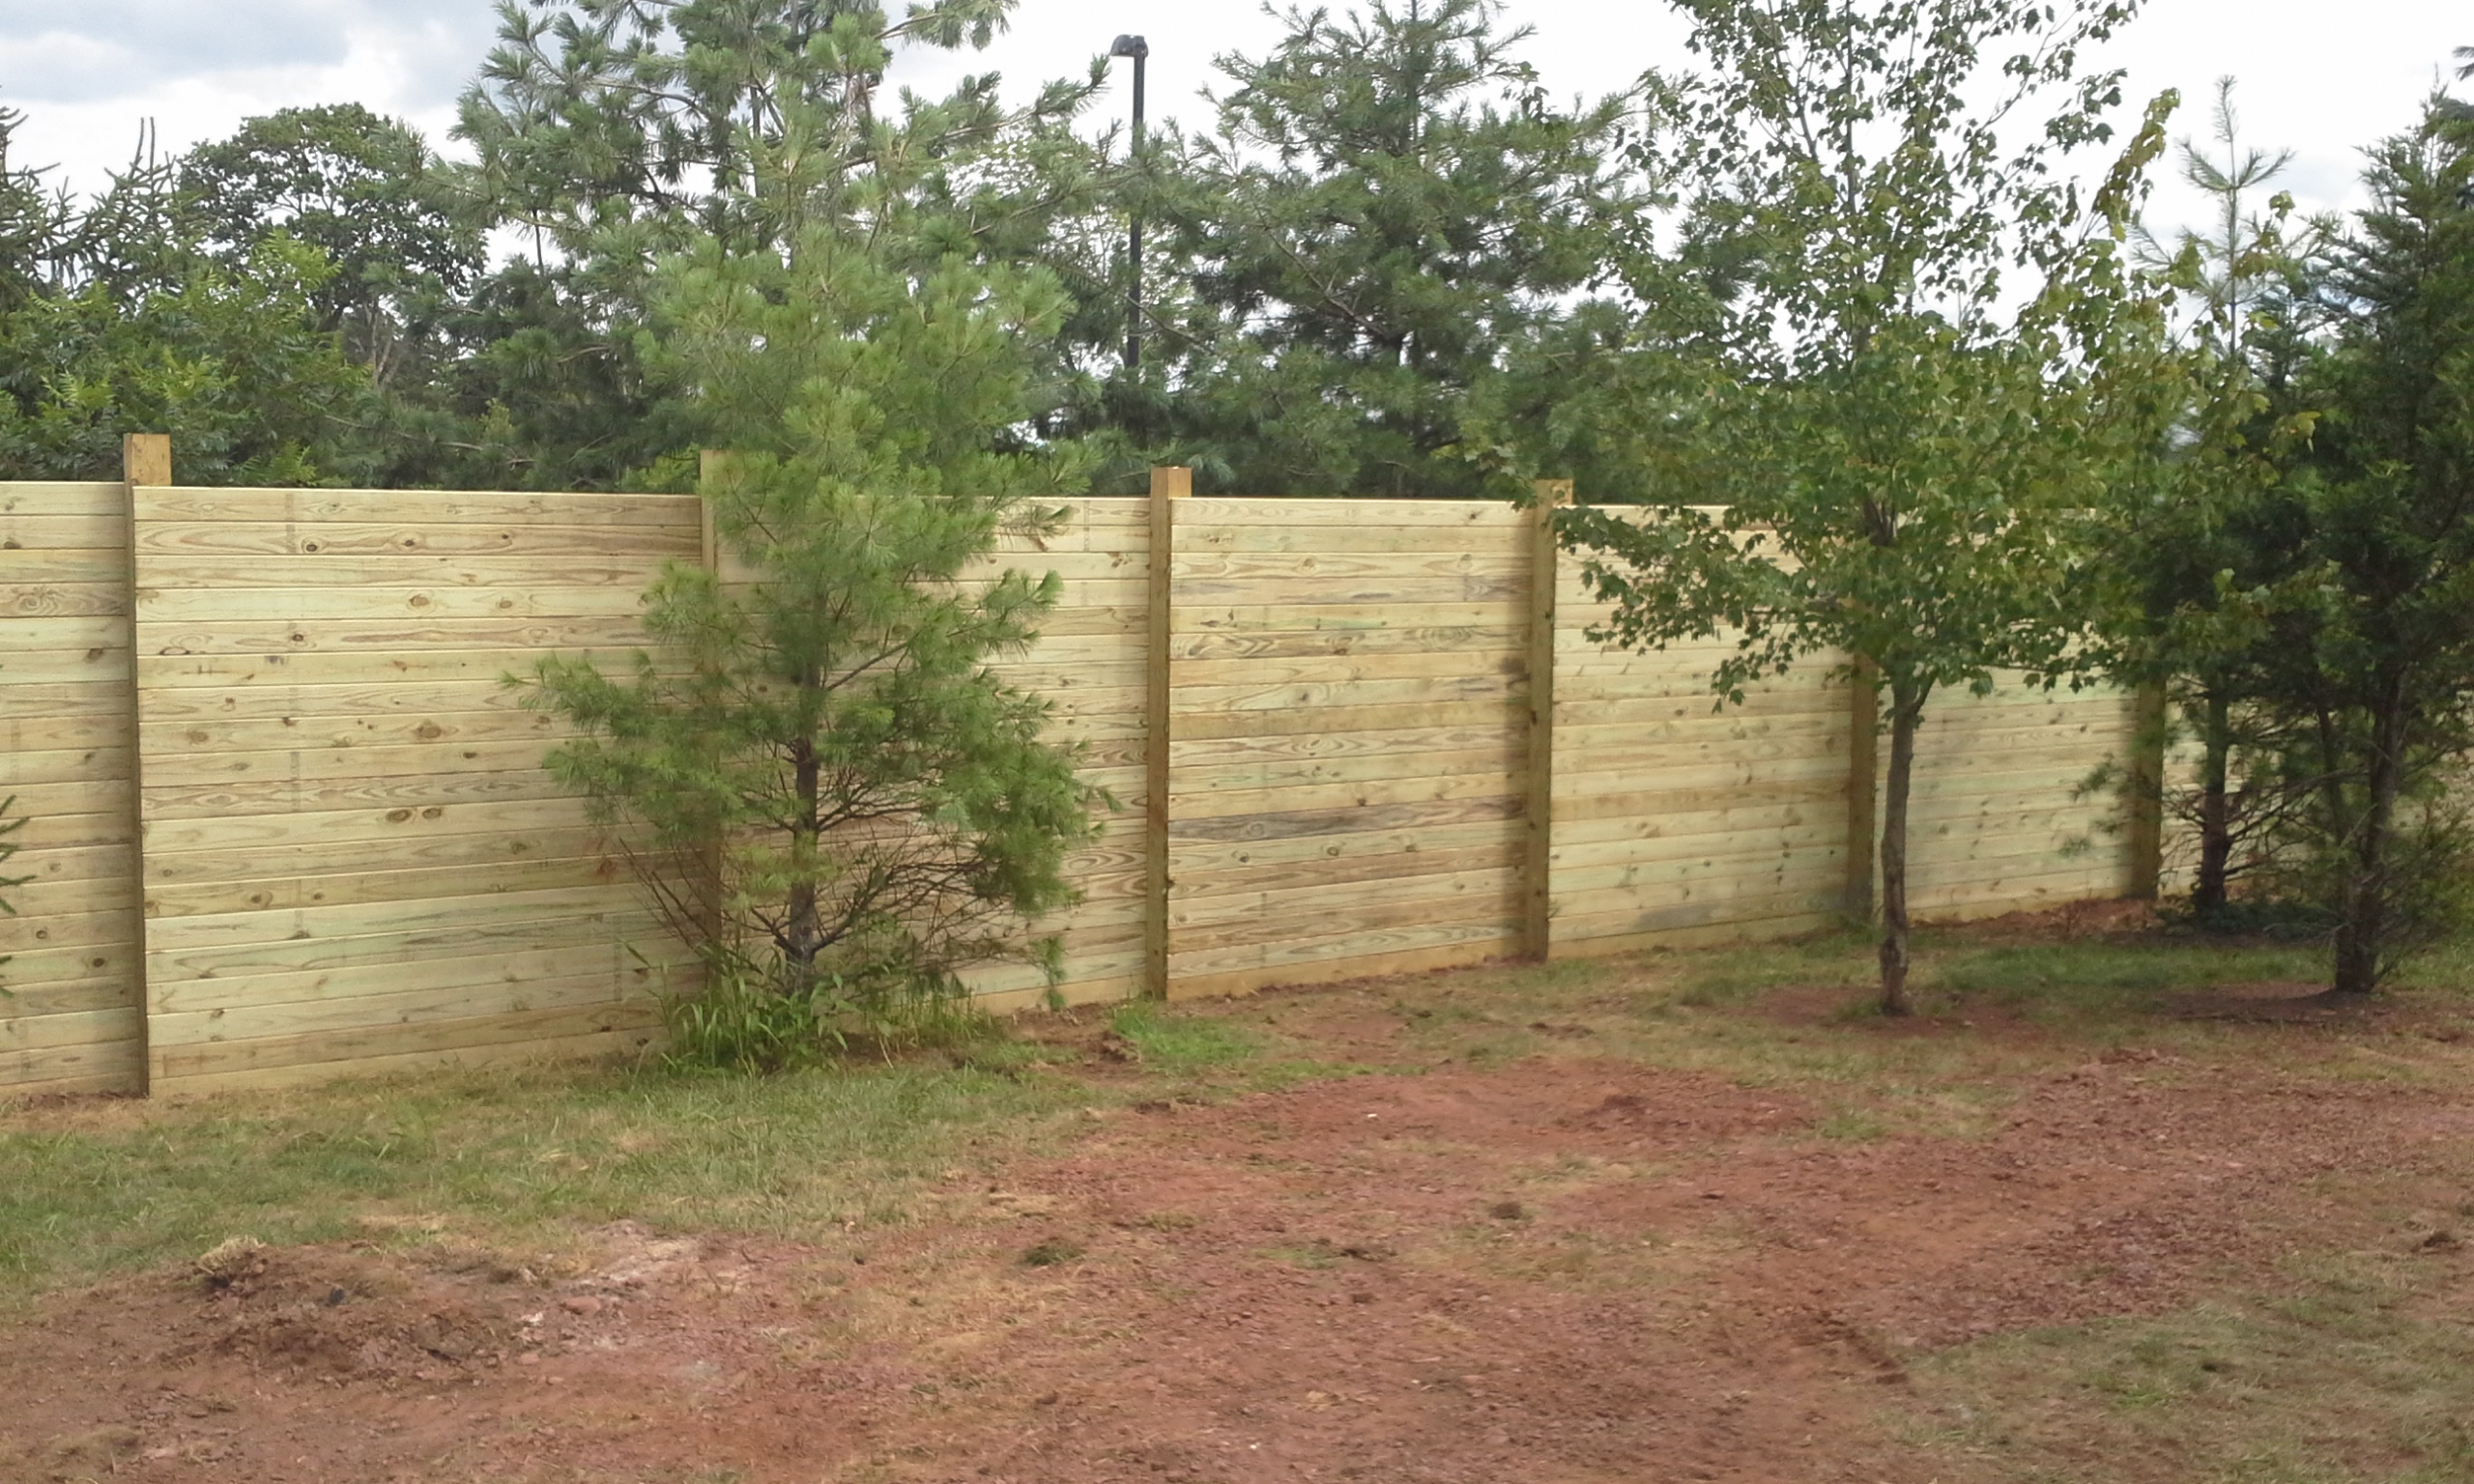 Sound suppressing fence